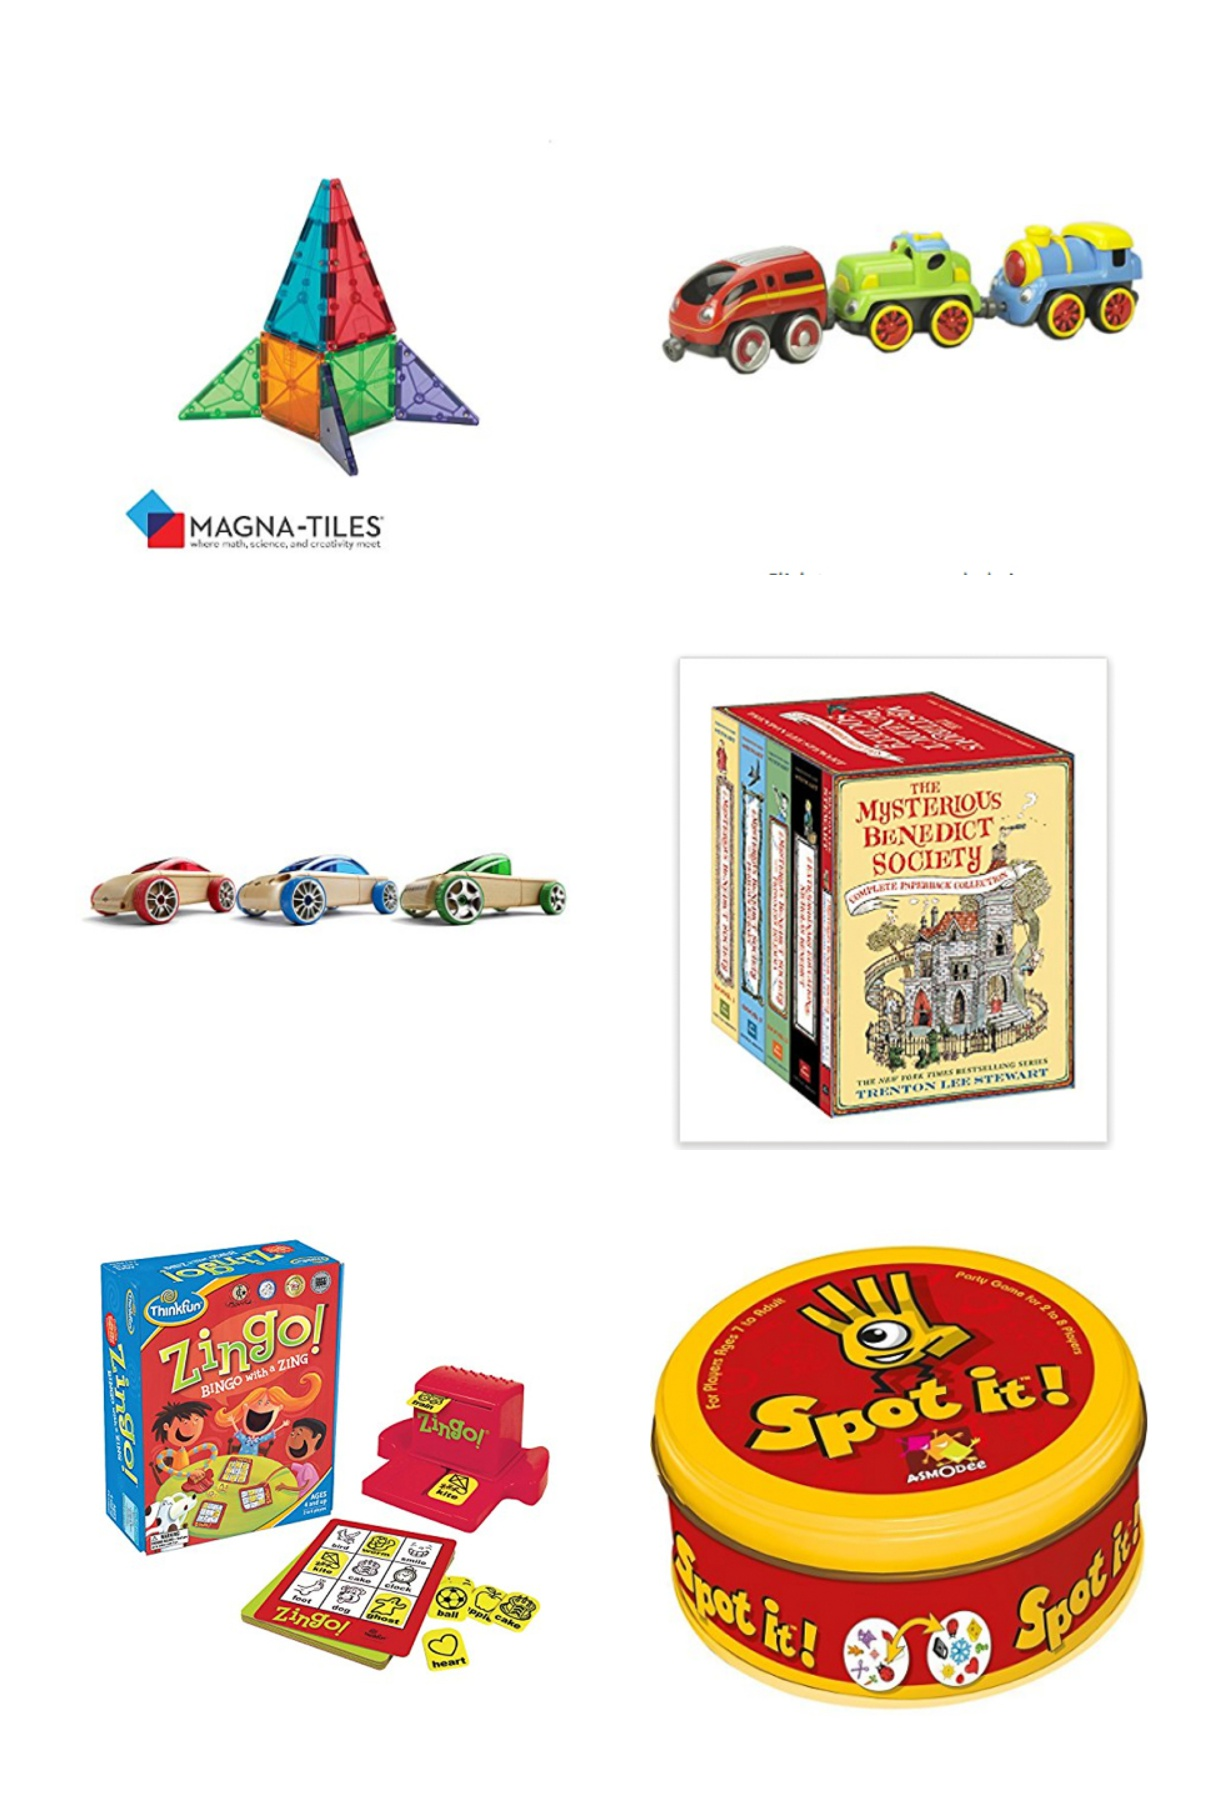 Christmas gift ideas for 4 to 10 year old boys curated from Amazon by megan cieloha